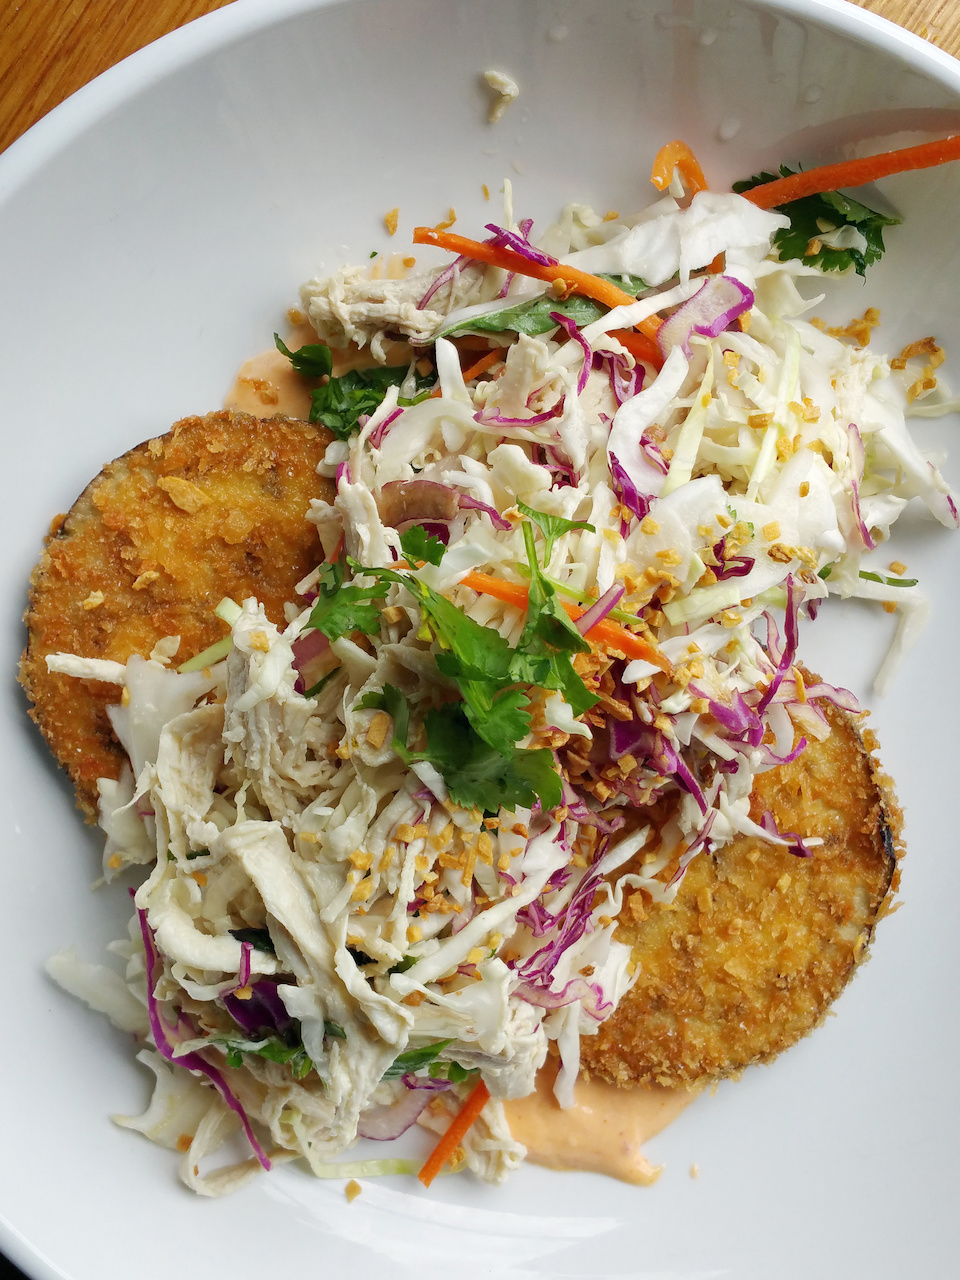 A refreshing chicken salad appetizer on crispy fried eggplant slices and topped with red cabbage, carrots, peanuts and cilantro